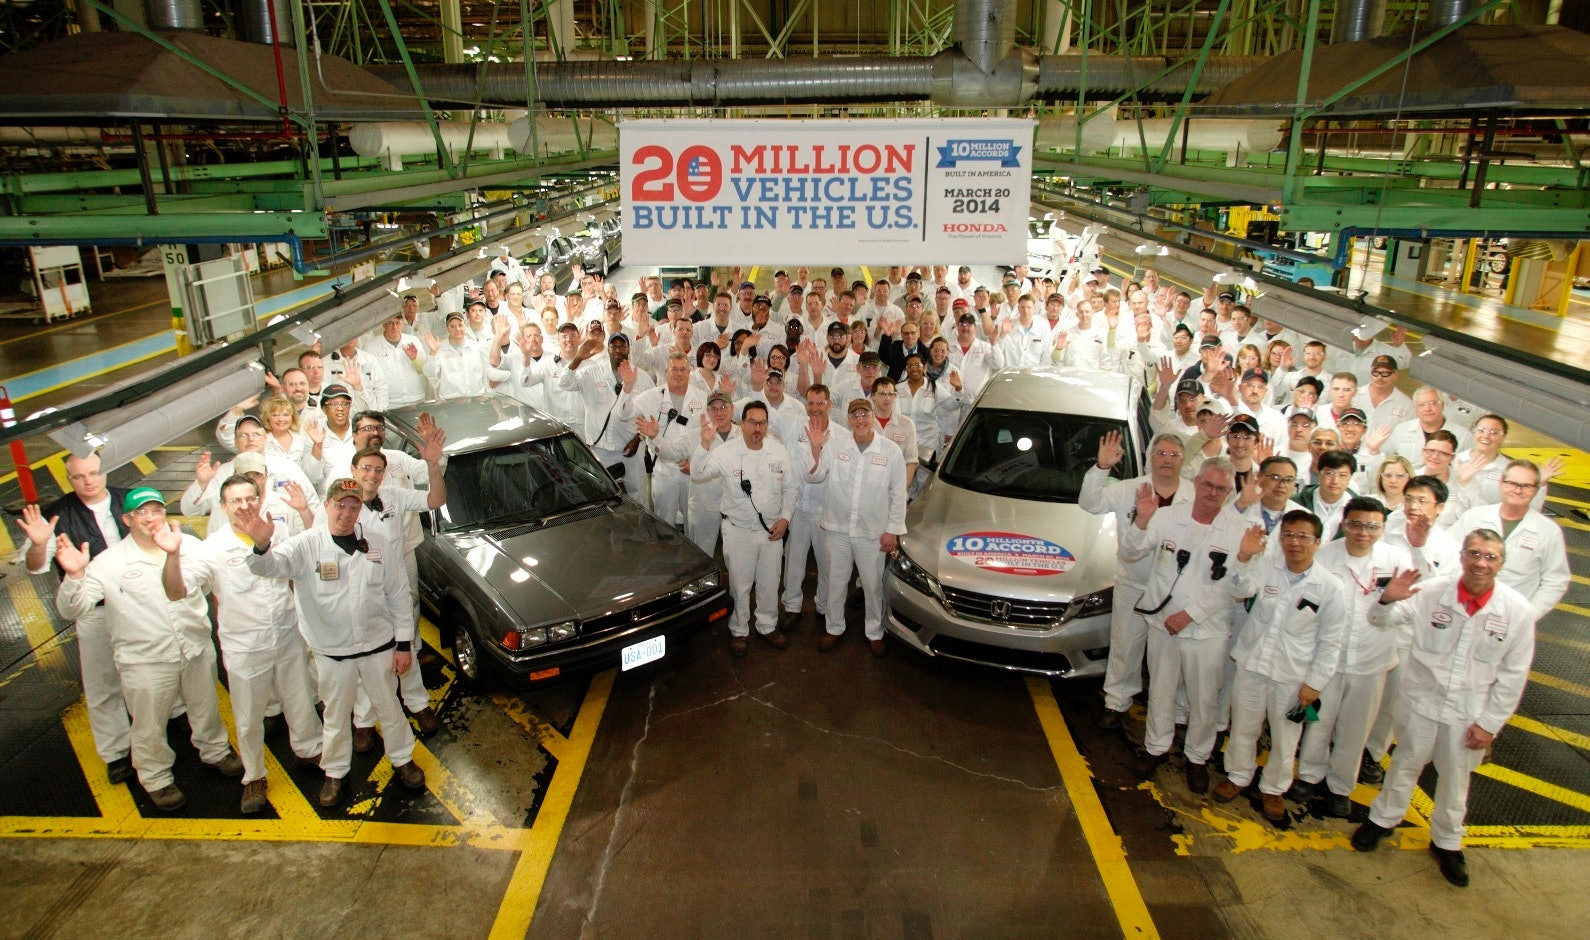 The Honda Plant in Ohio.